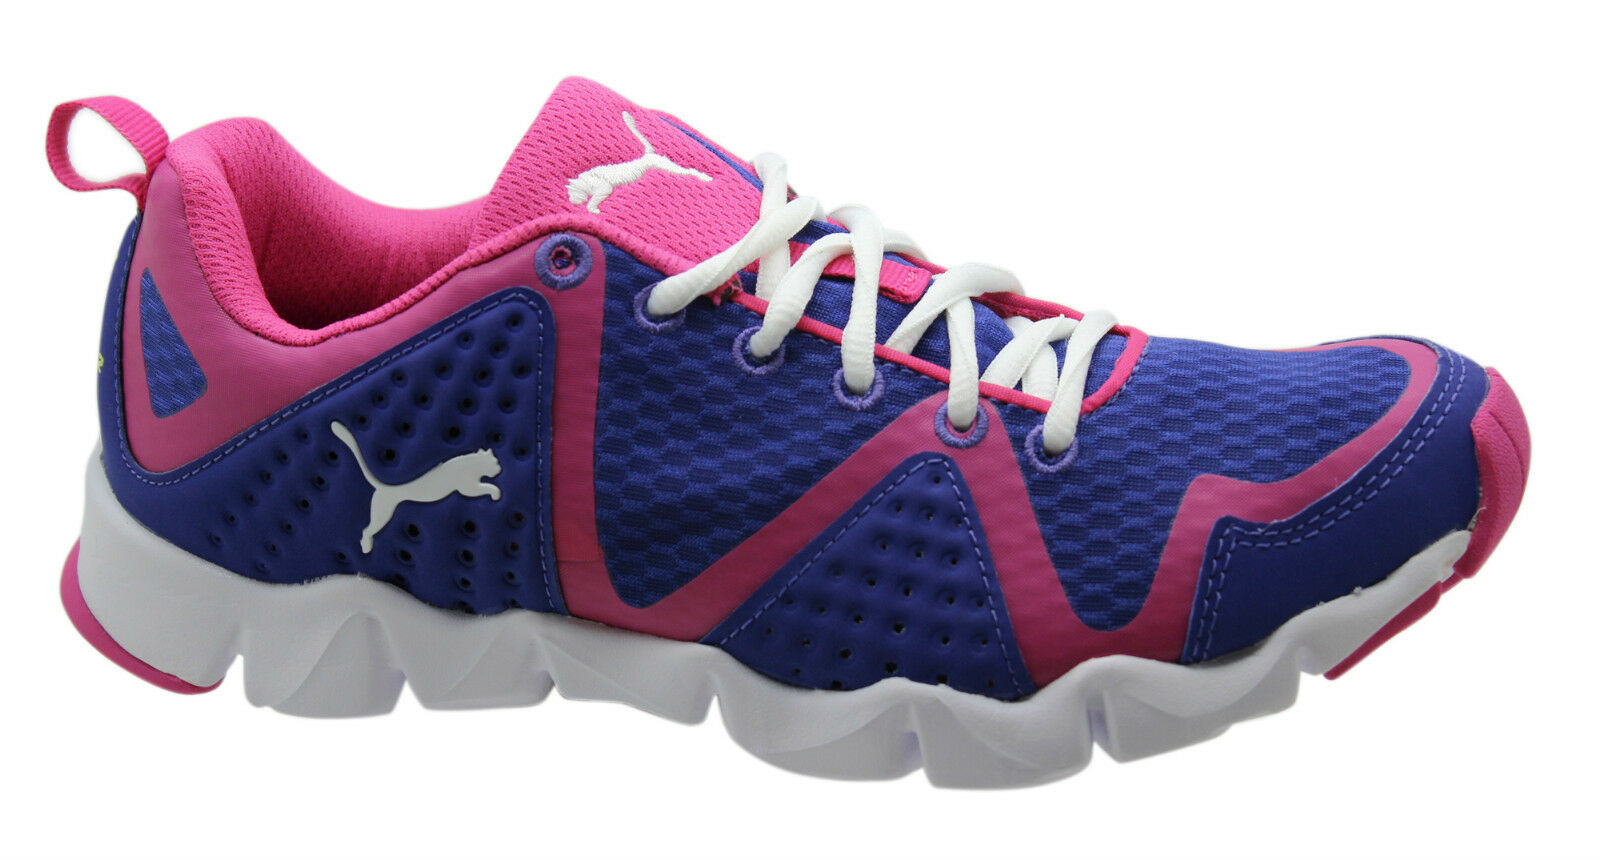 Puma Shintai v2 femme running baskets violet maille sports 186947 01 D77